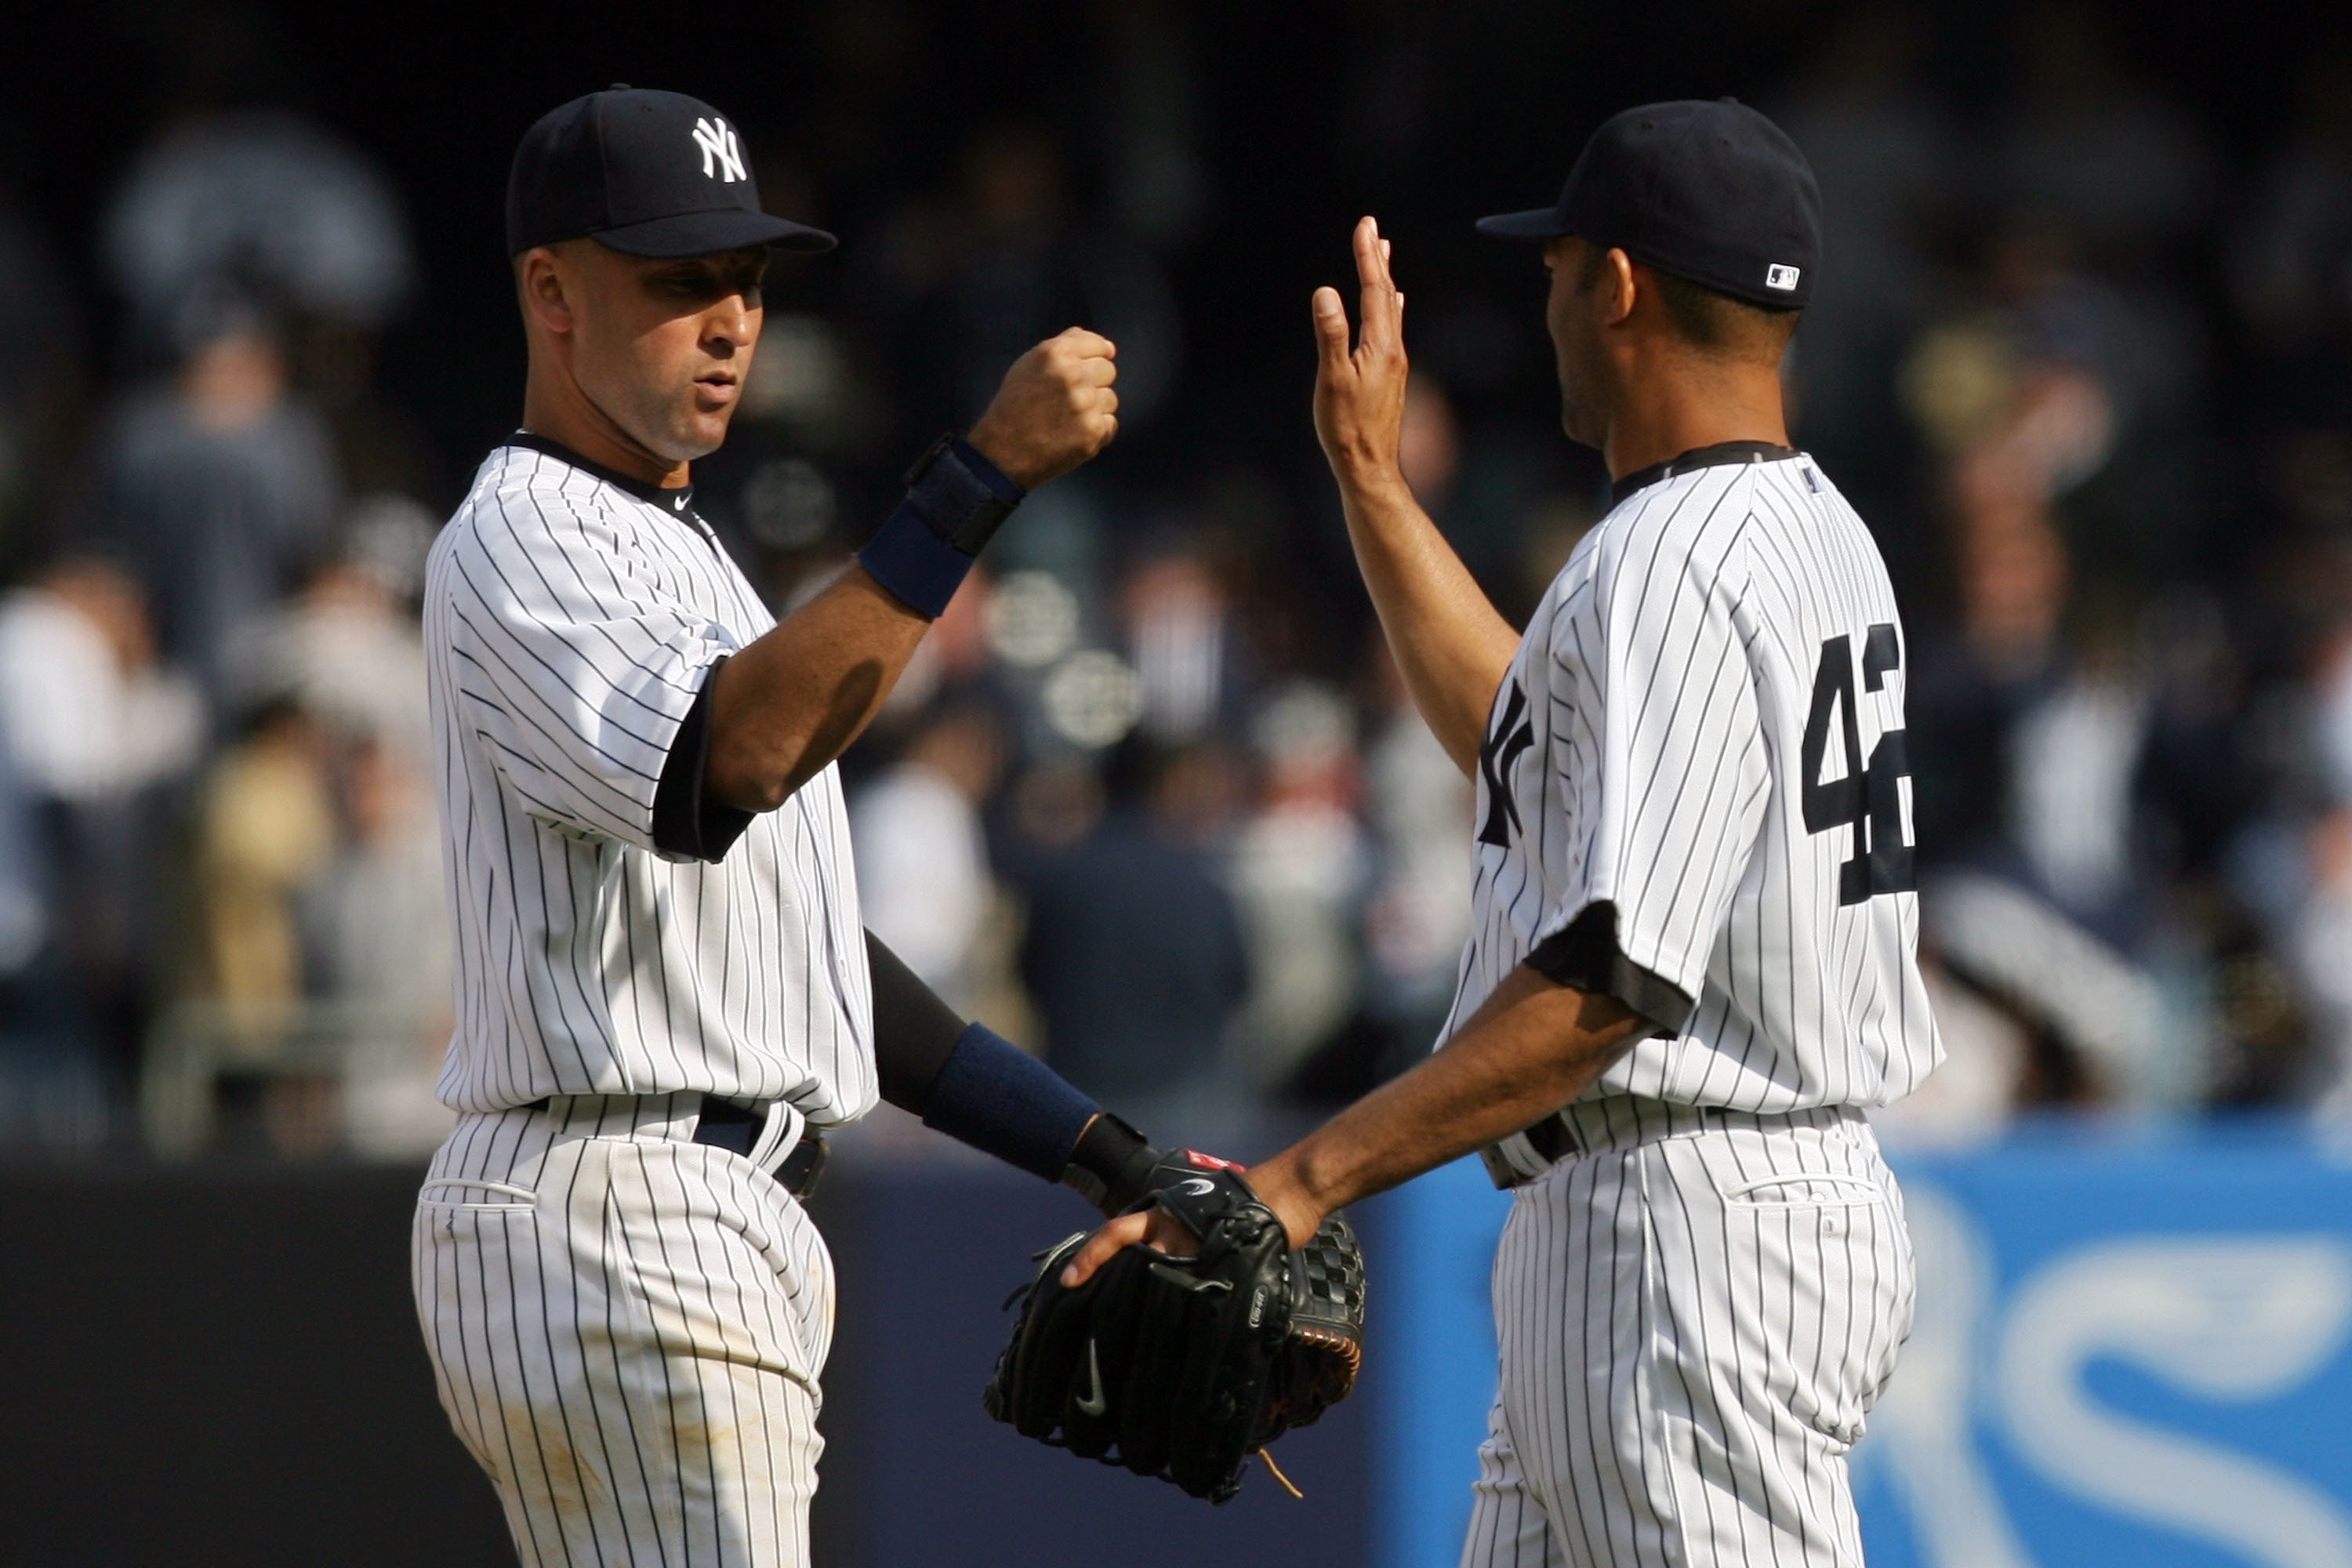 NEW YORK - APRIL 13:  Derek Jeter #2 and Mariano Rivera #42 of the New York Yankees celebrate after defeating the Los Angeles Angels of Anaheim during the Yankees home opener at Yankee Stadium on April 13, 2010 in the Bronx borough of New York City.  (Pho